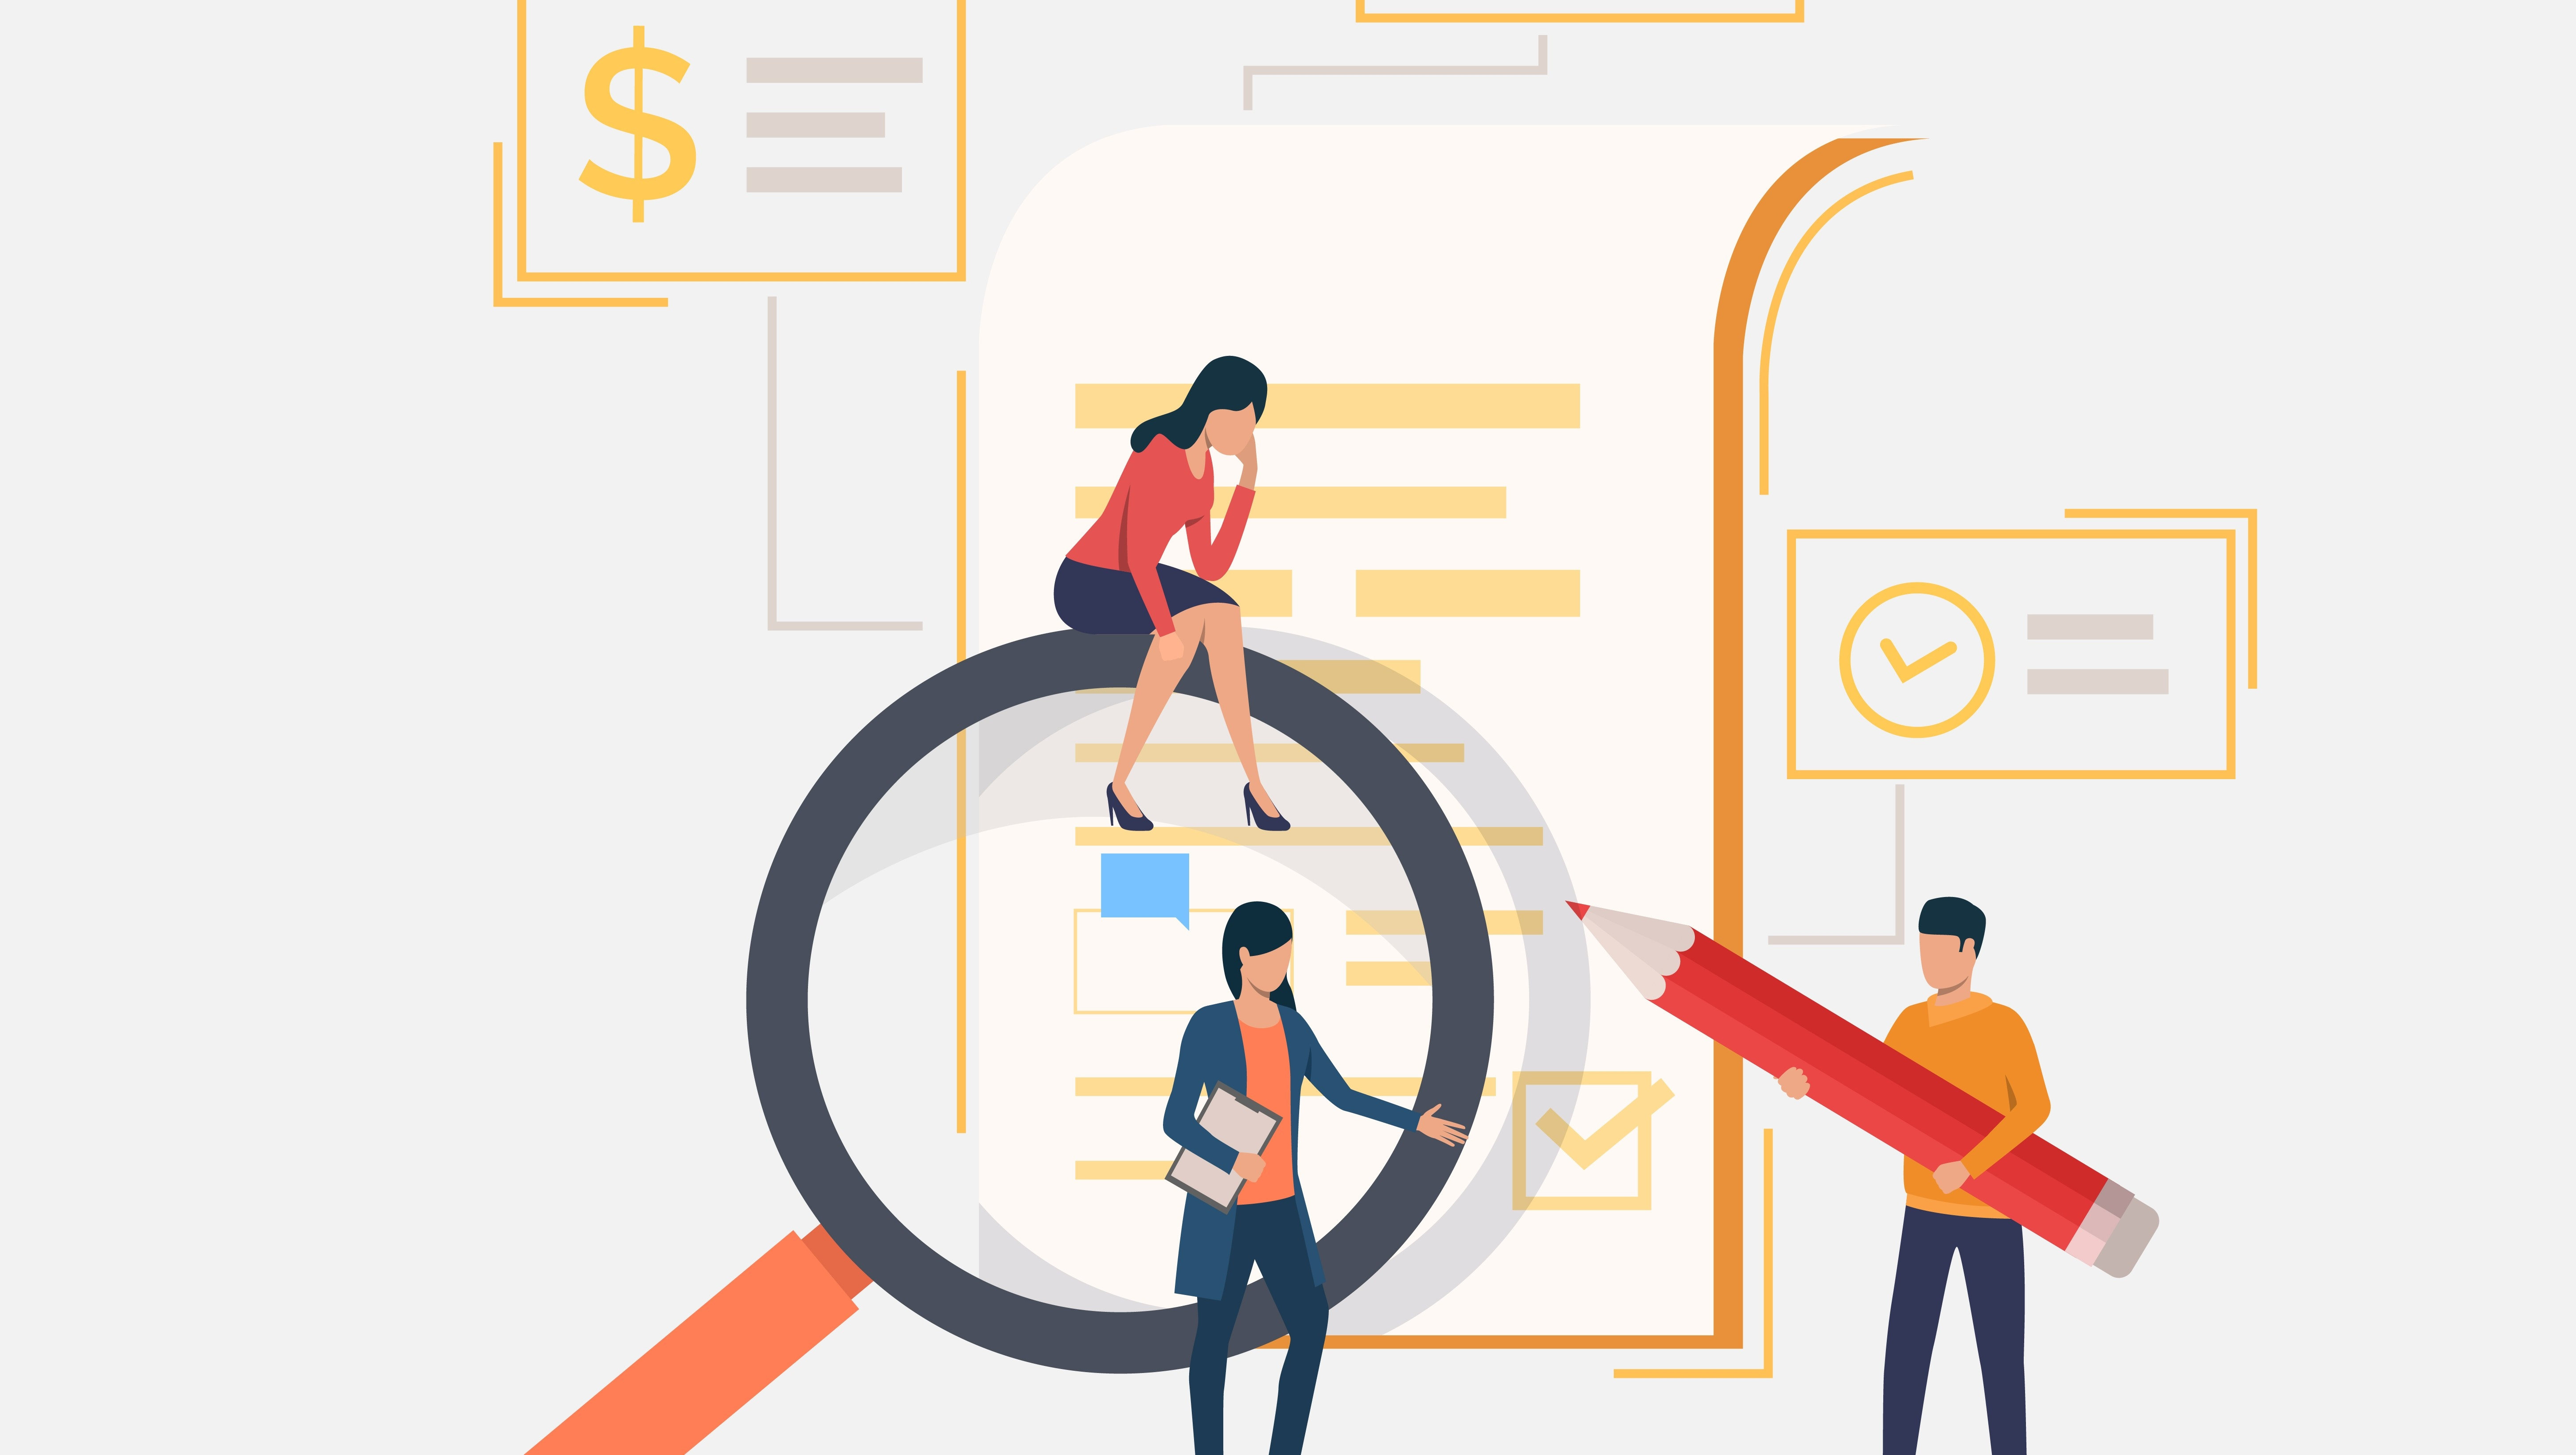 Business team, magnifying glass, document. Analysis, research, browser. Search concept. Vector illustration can be used for topics like business, internet, communication